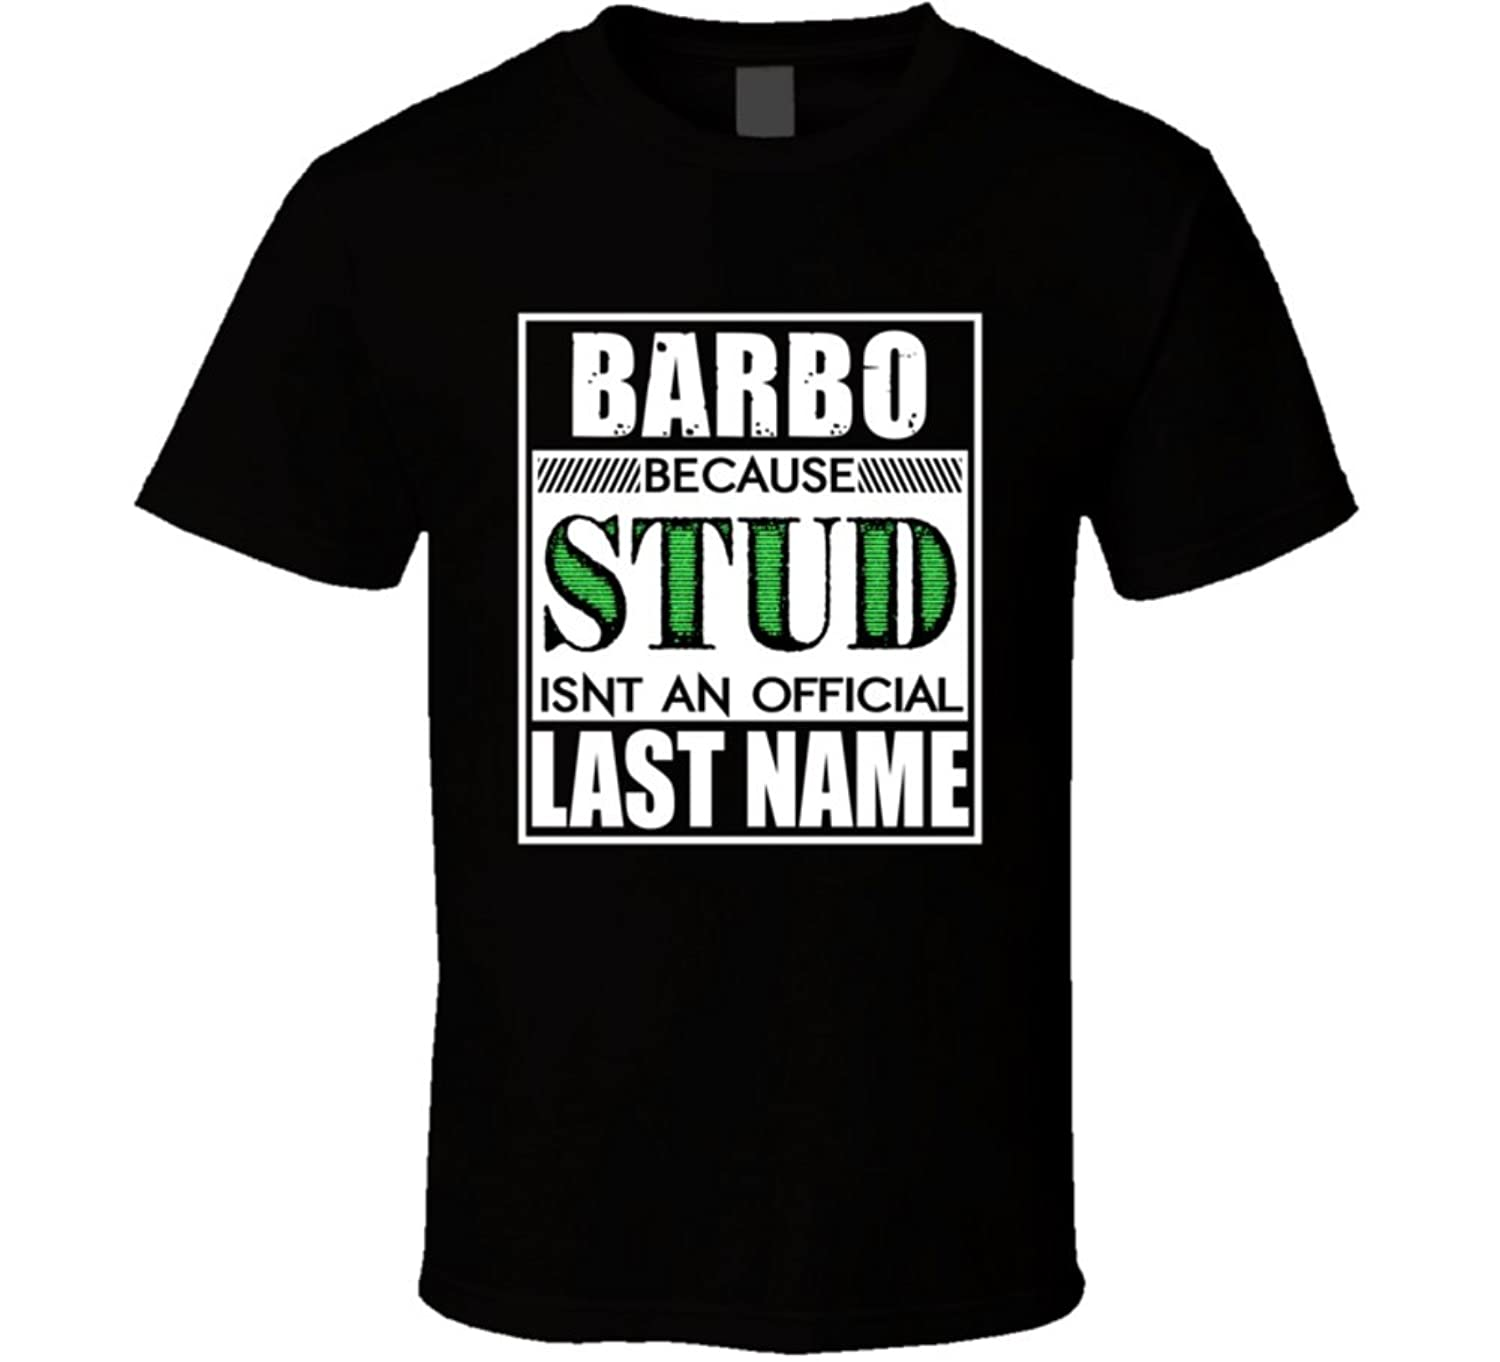 Barbo Because Stud official Last Name Funny T Shirt